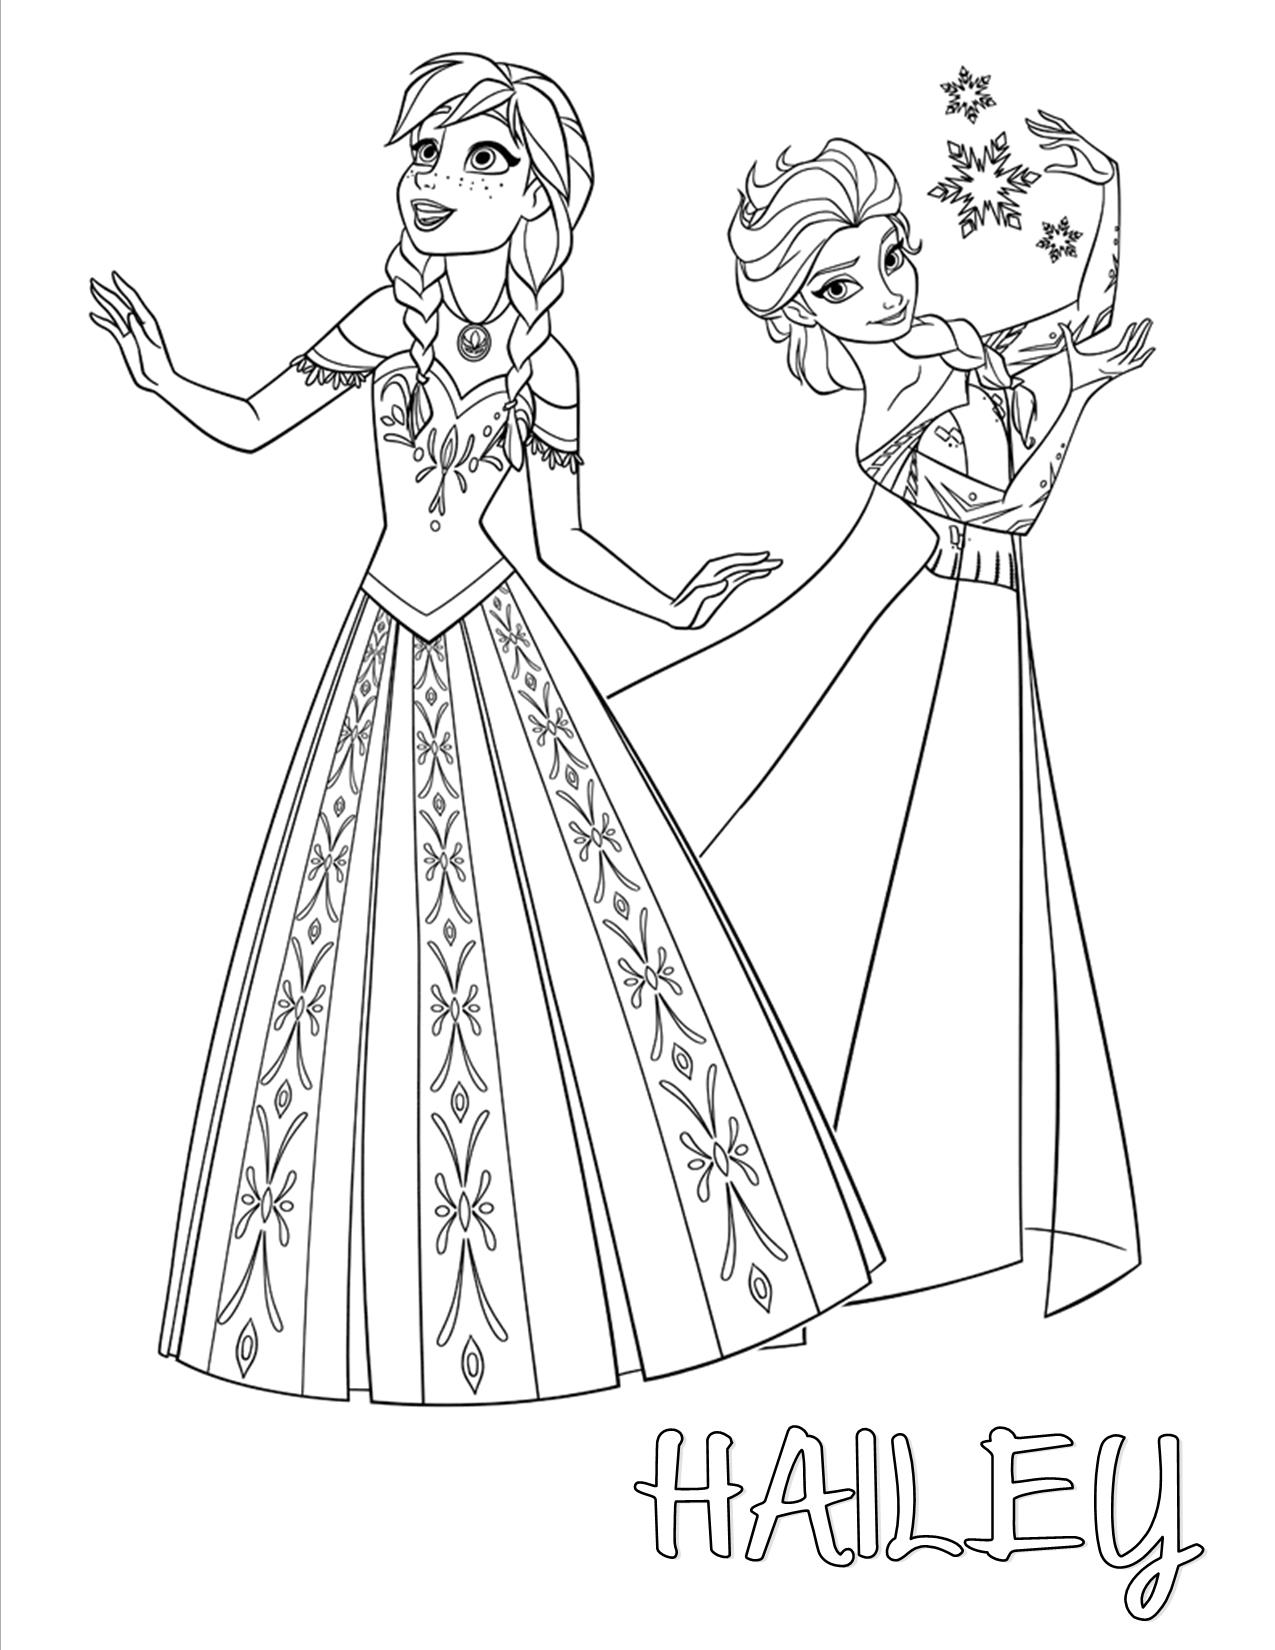 Free elsa clipart images black and white banner freeuse Elsa And Anna Sketch at PaintingValley.com | Explore collection of ... banner freeuse